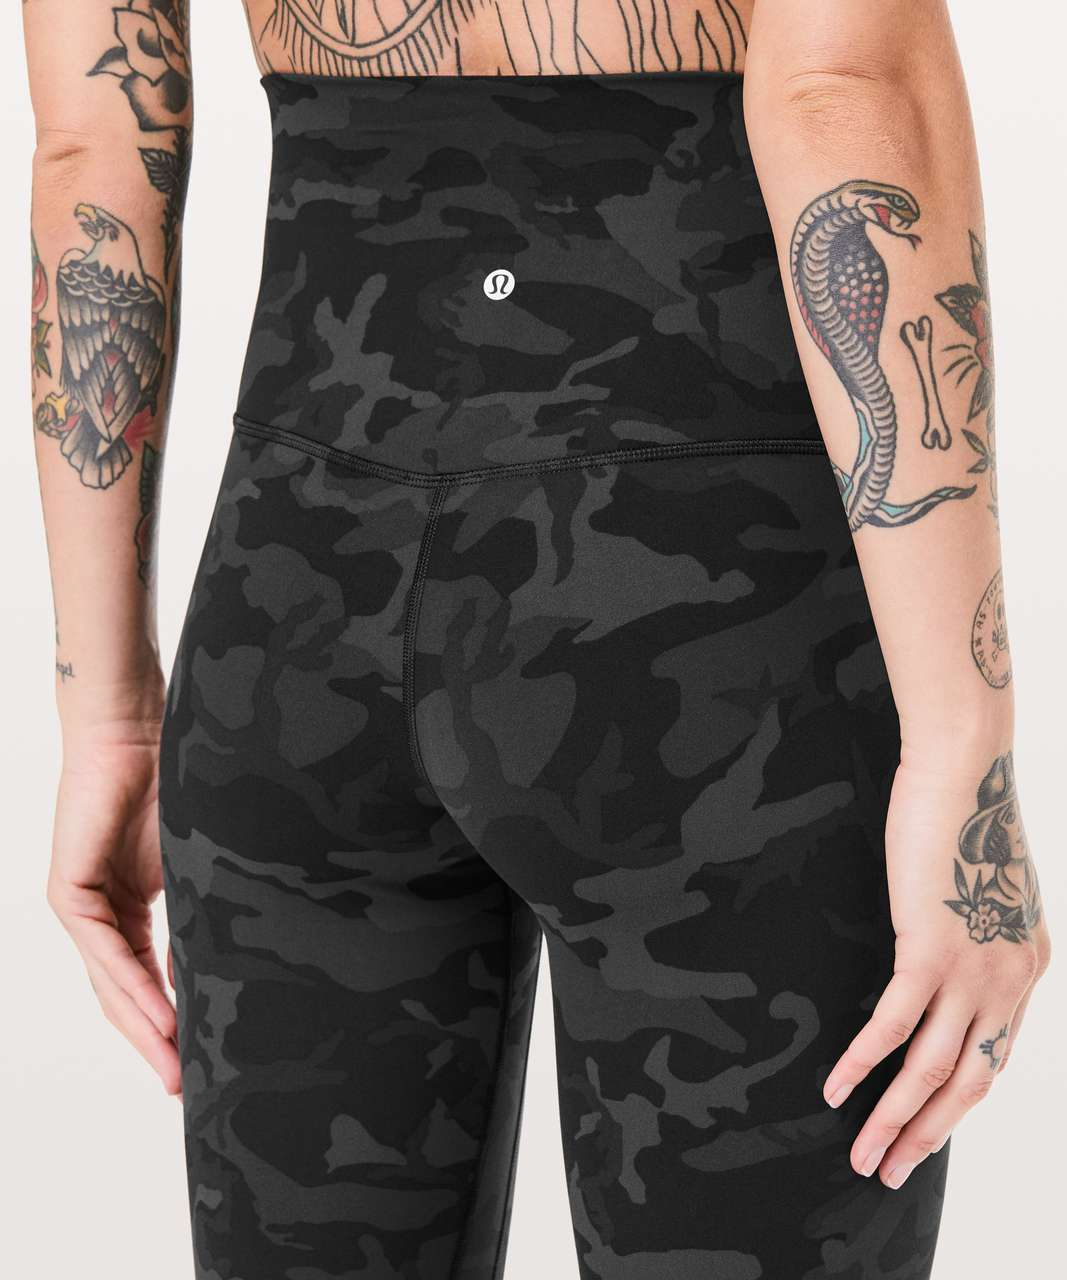 "Lululemon Align Pant Super High-Rise *28"" - Incognito Camo Multi Grey"